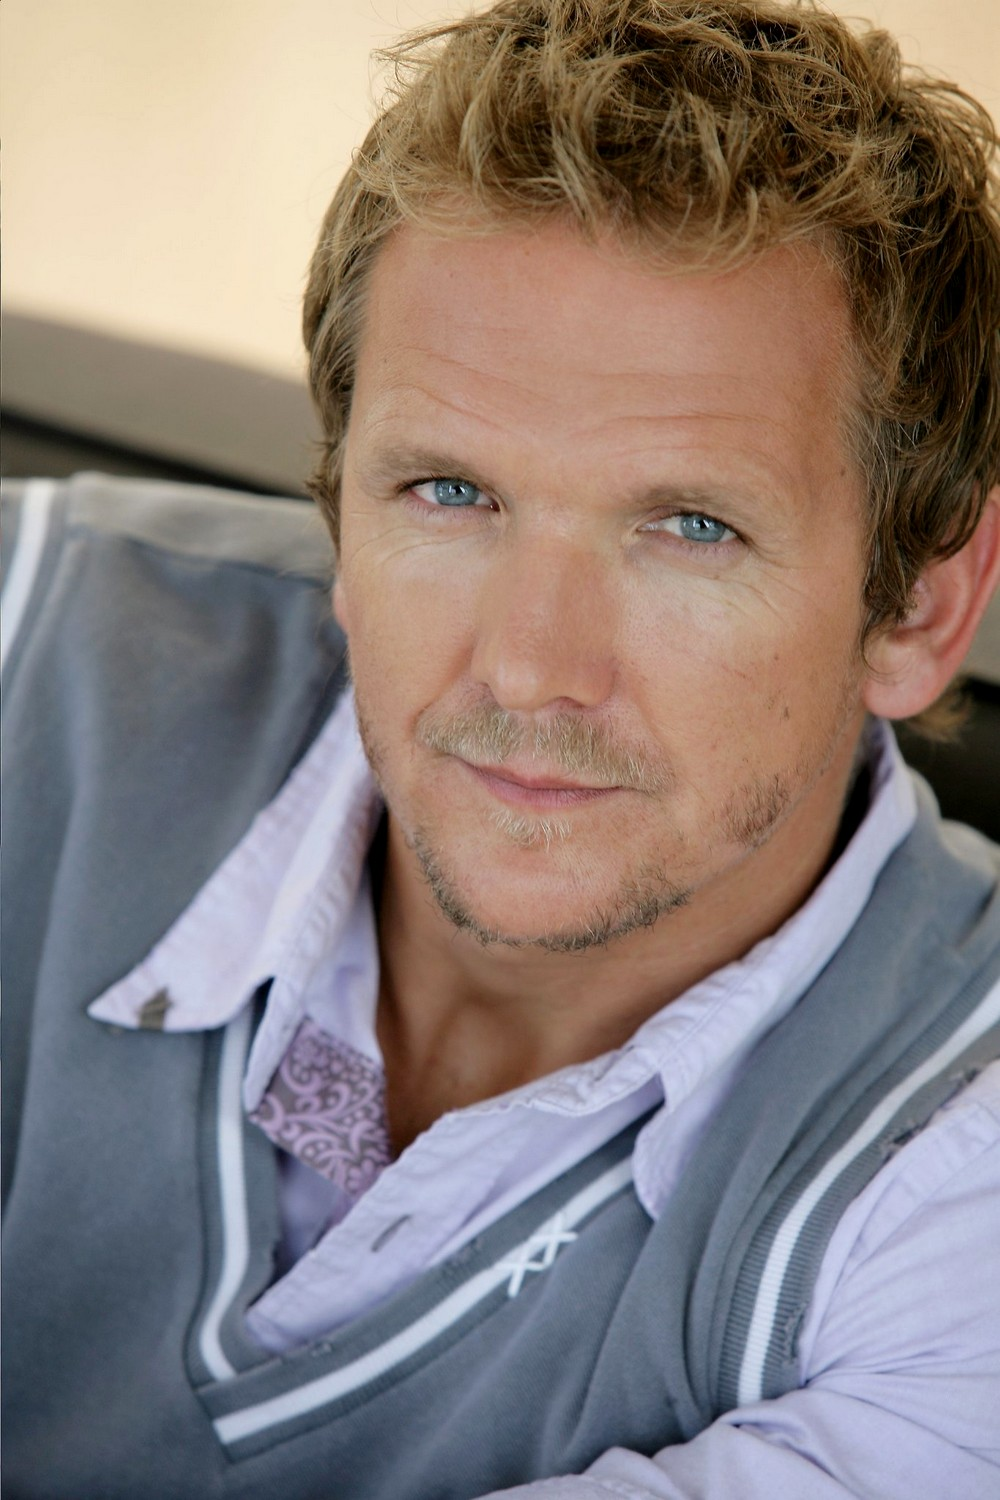 The 53-year old son of father (?) and mother(?), 180 cm tall Sebastian Roché in 2017 photo